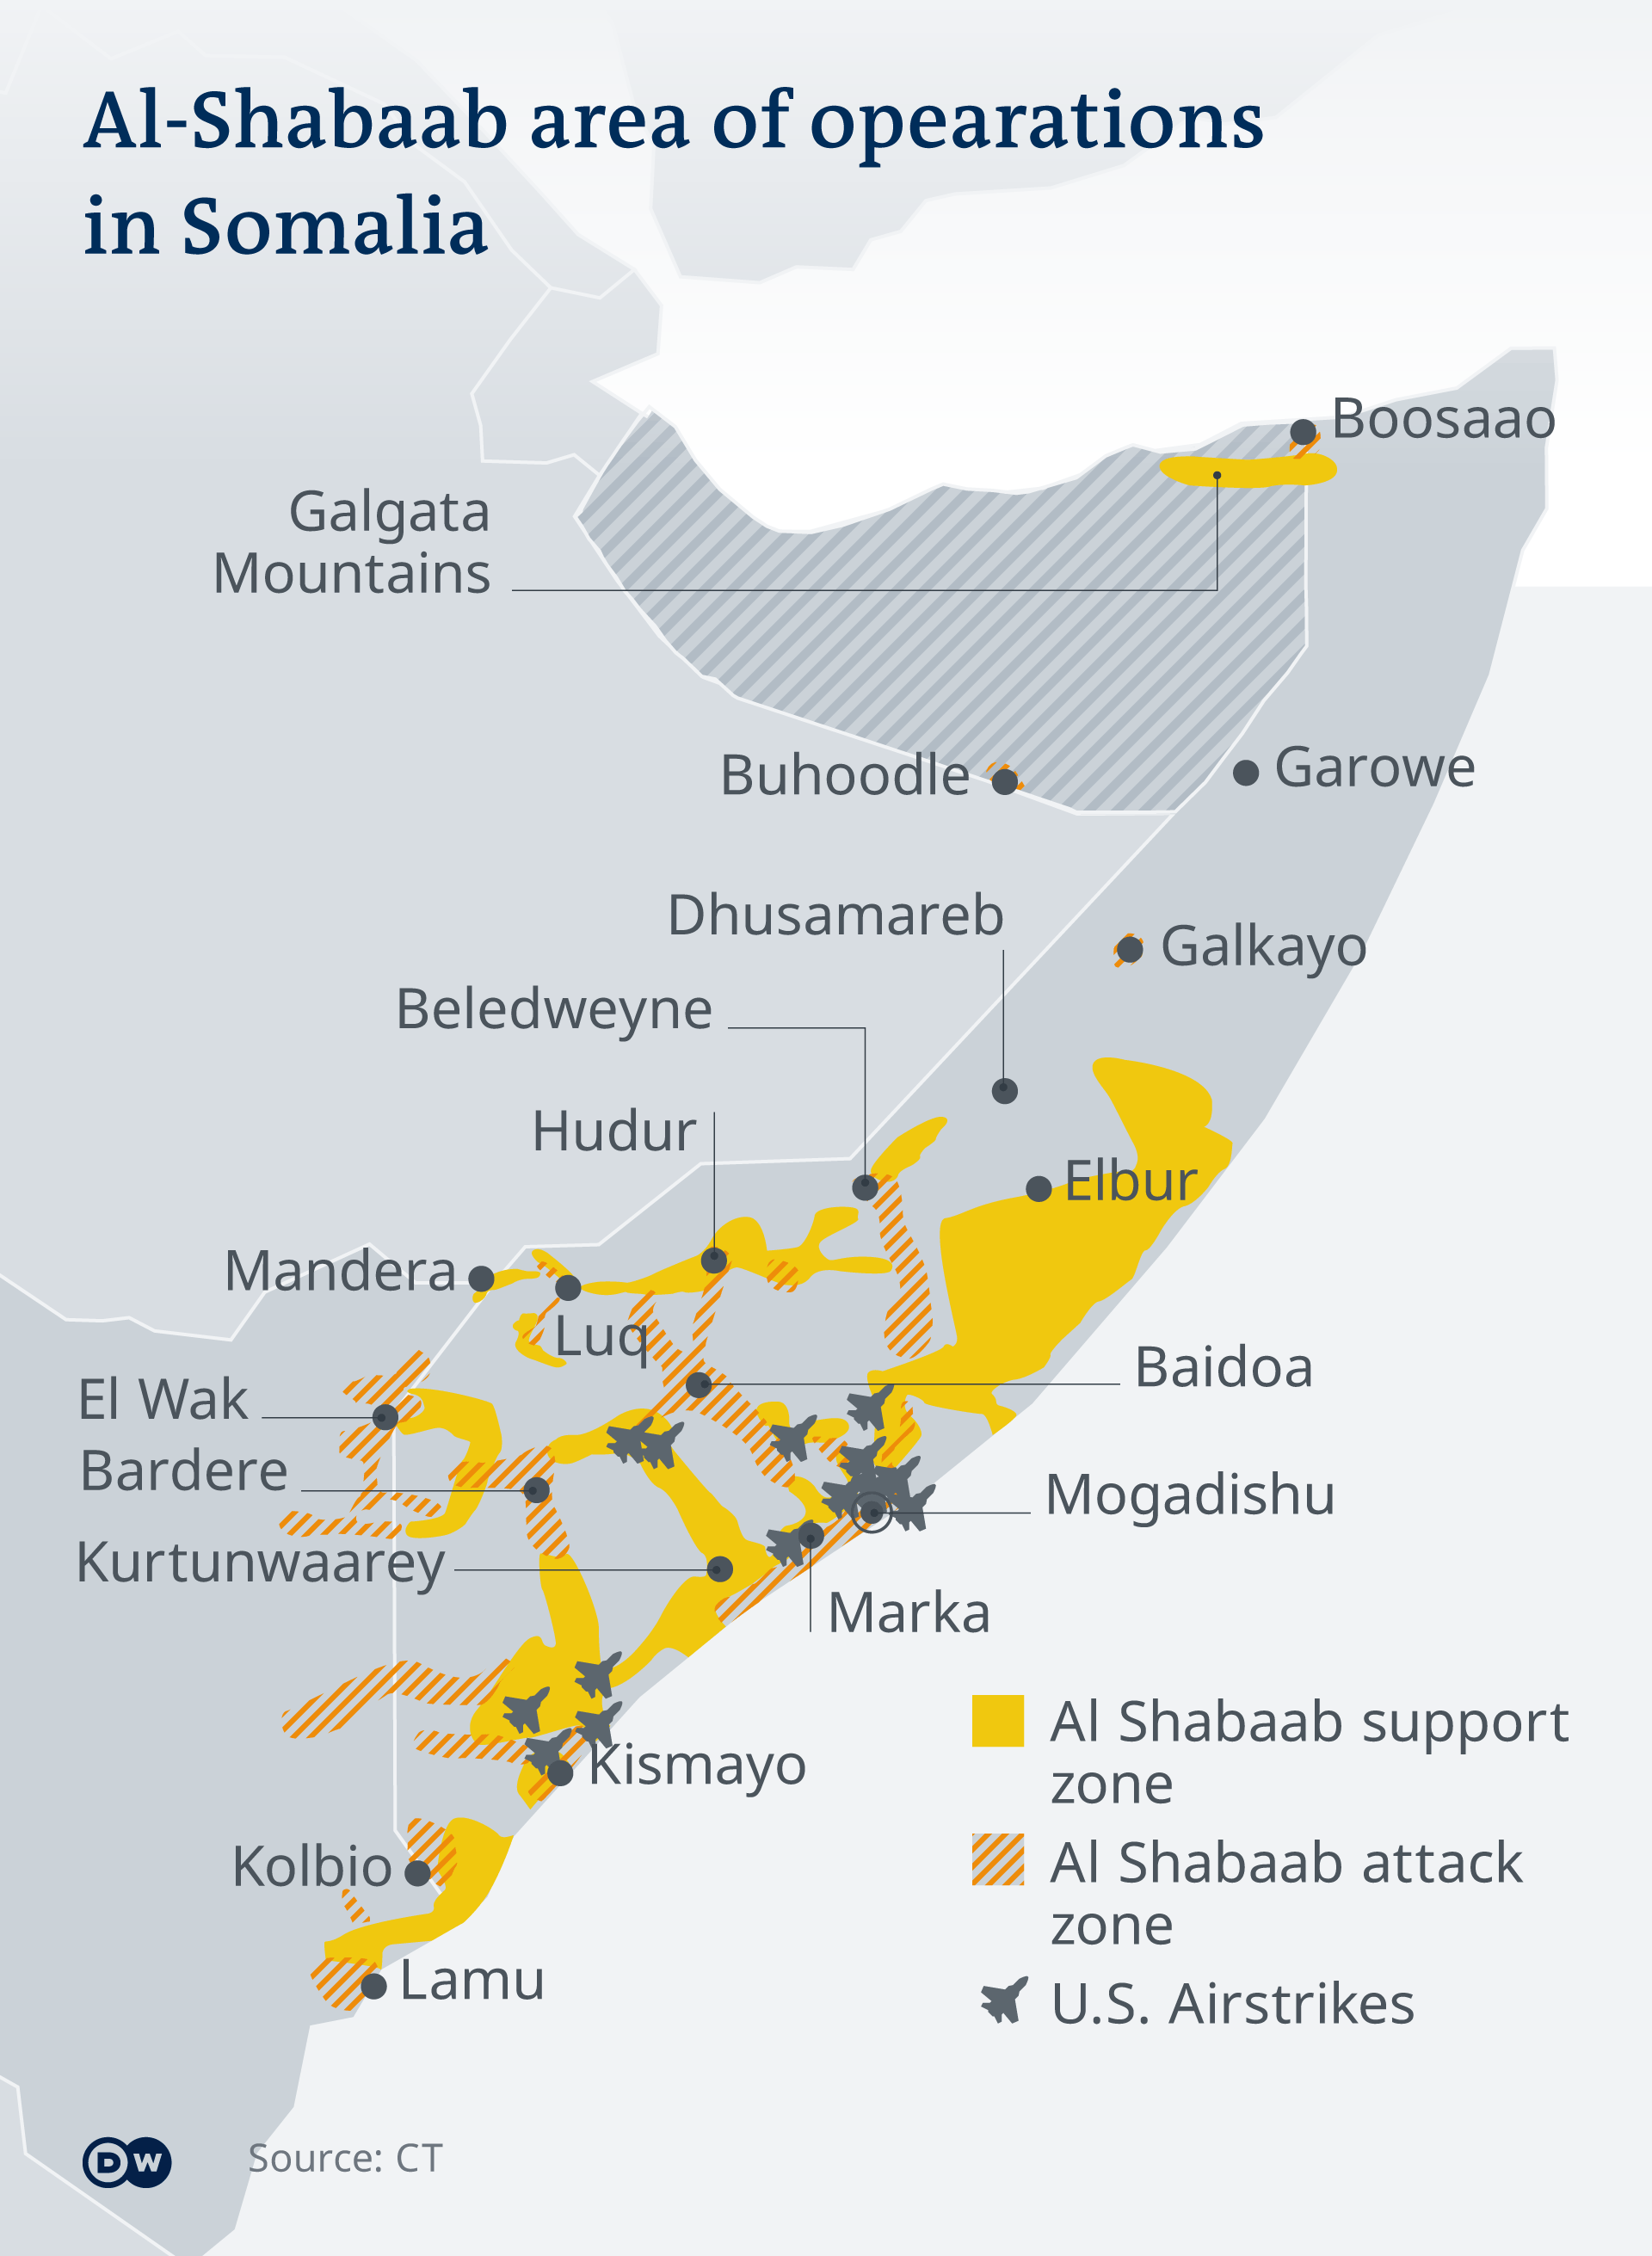 A map showing al-Shabab operations across Somalia EN